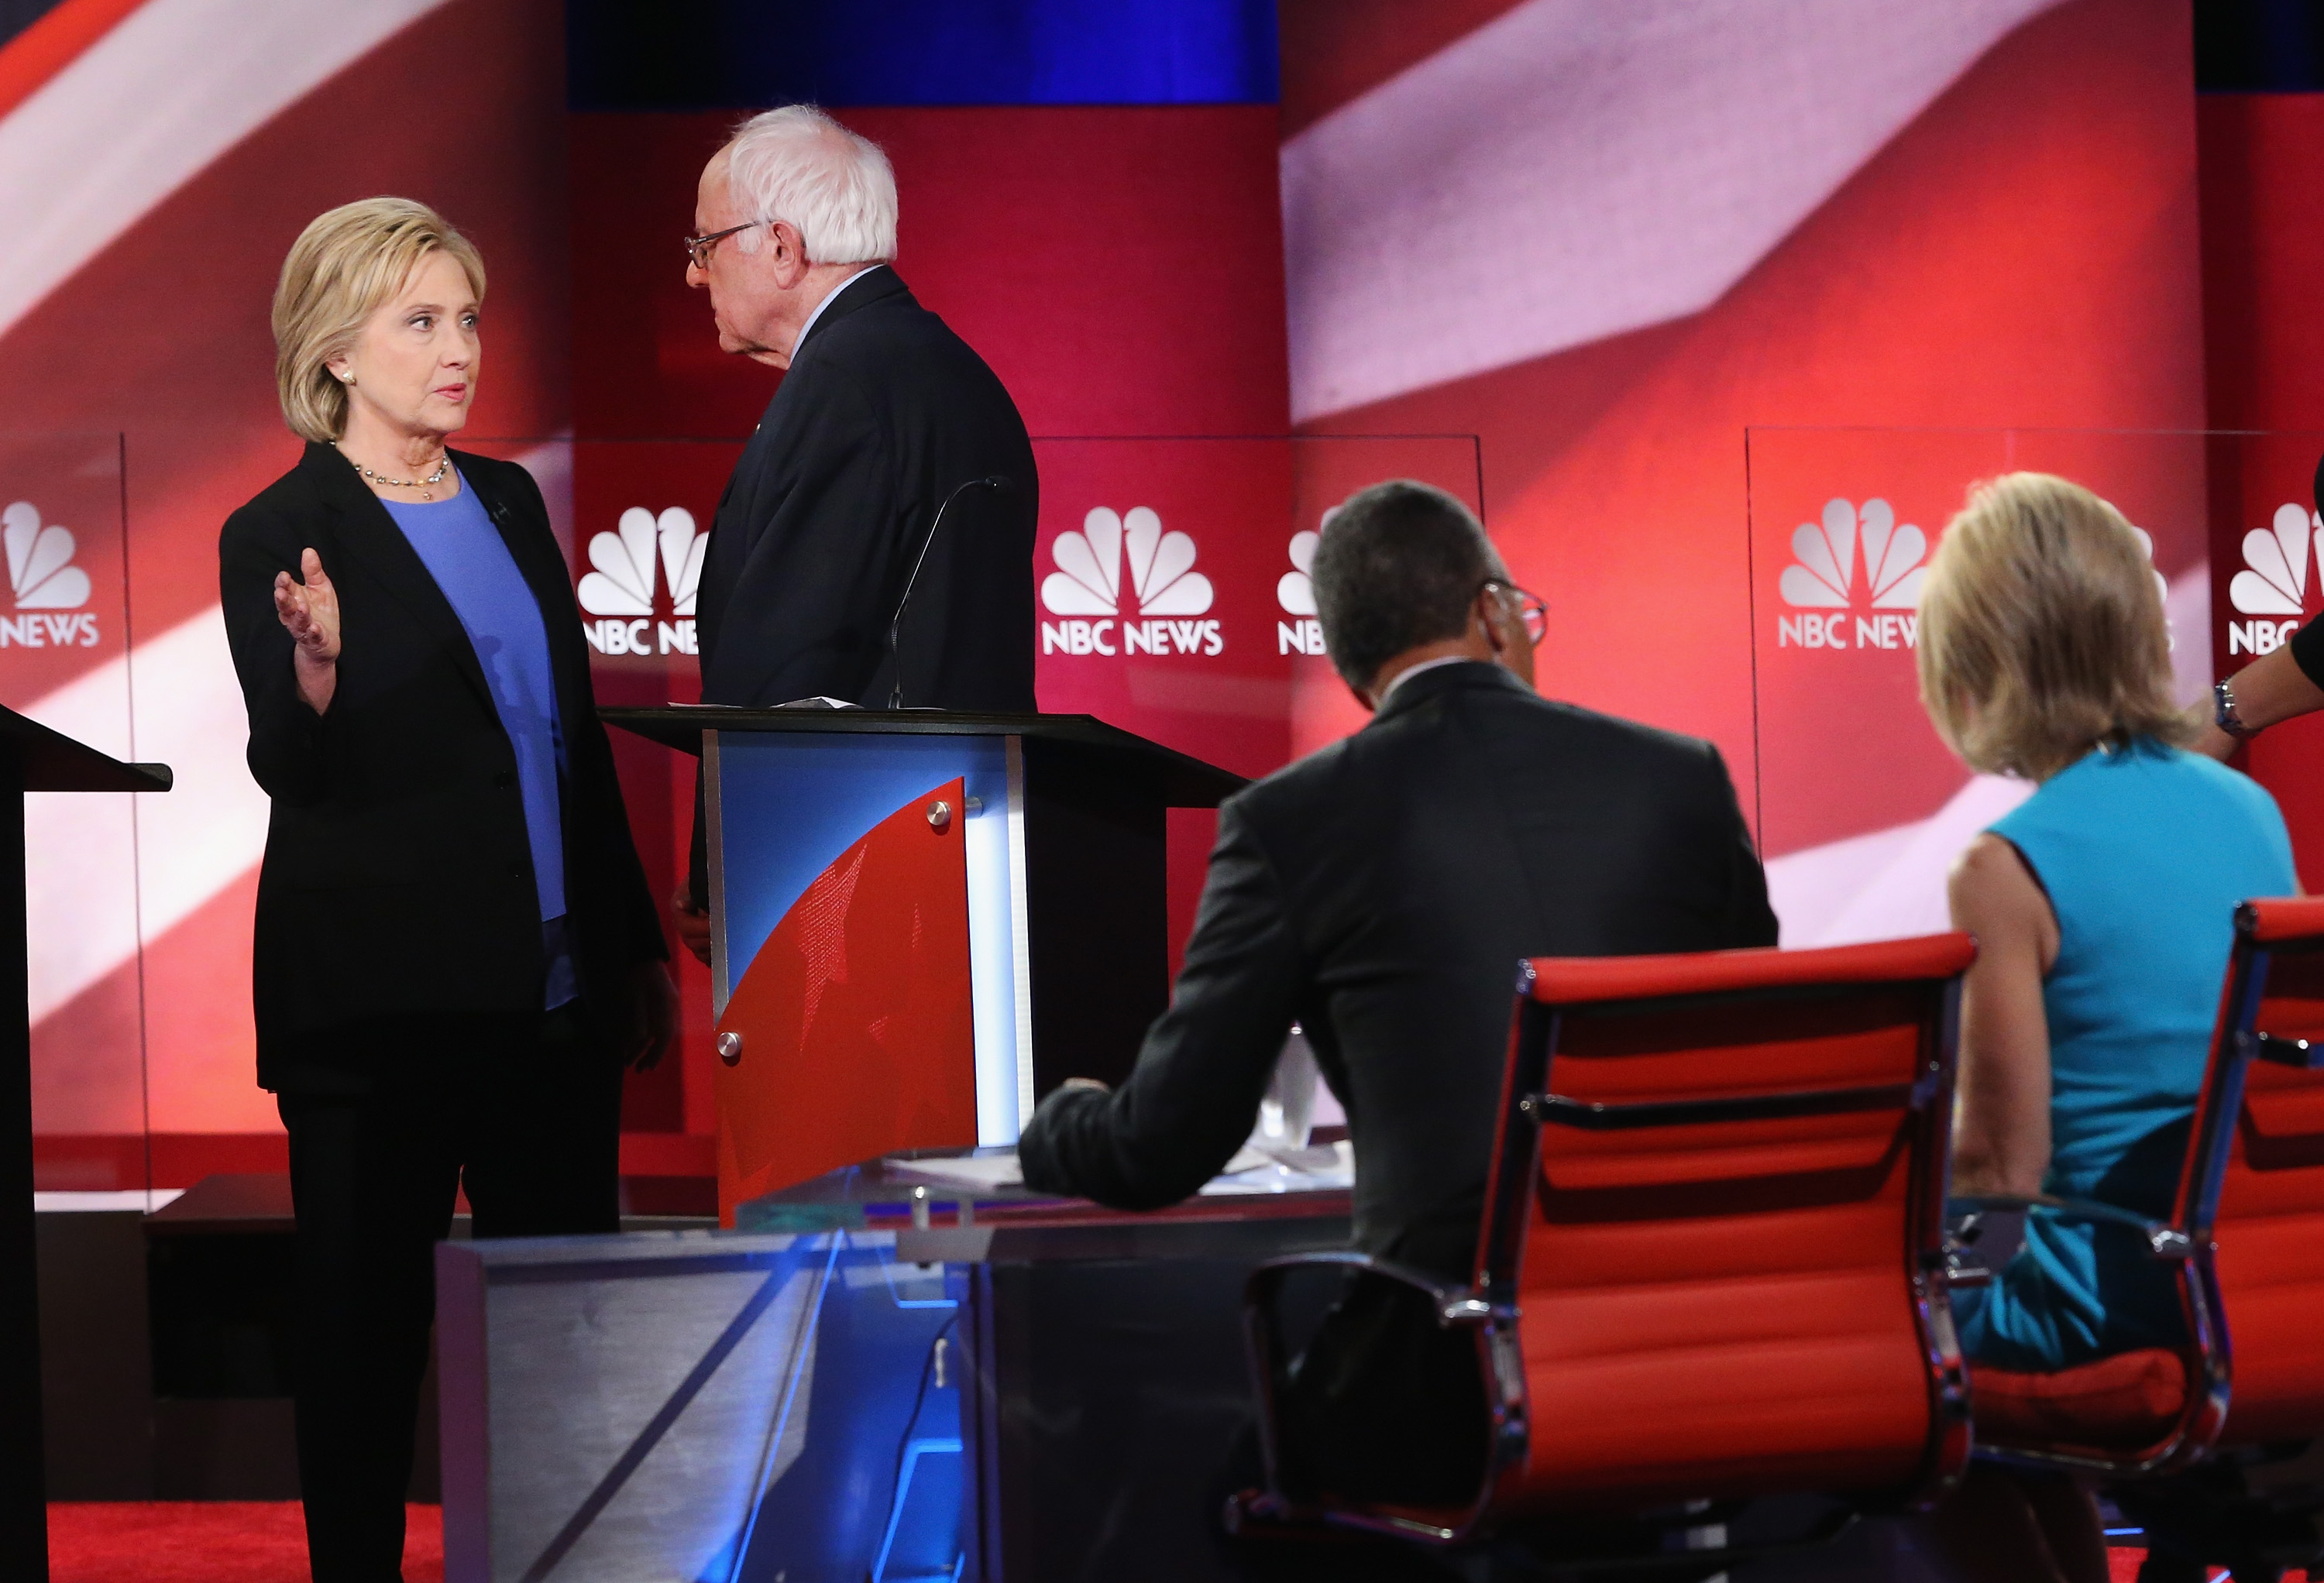 Democratic presidential candidates Hillary Clinton and Senator Bernie Sanders chat following the Democratic Candidates Debate hosted by NBC News and YouTube on Jan. 17, 2016 in Charleston, South Carolina. T